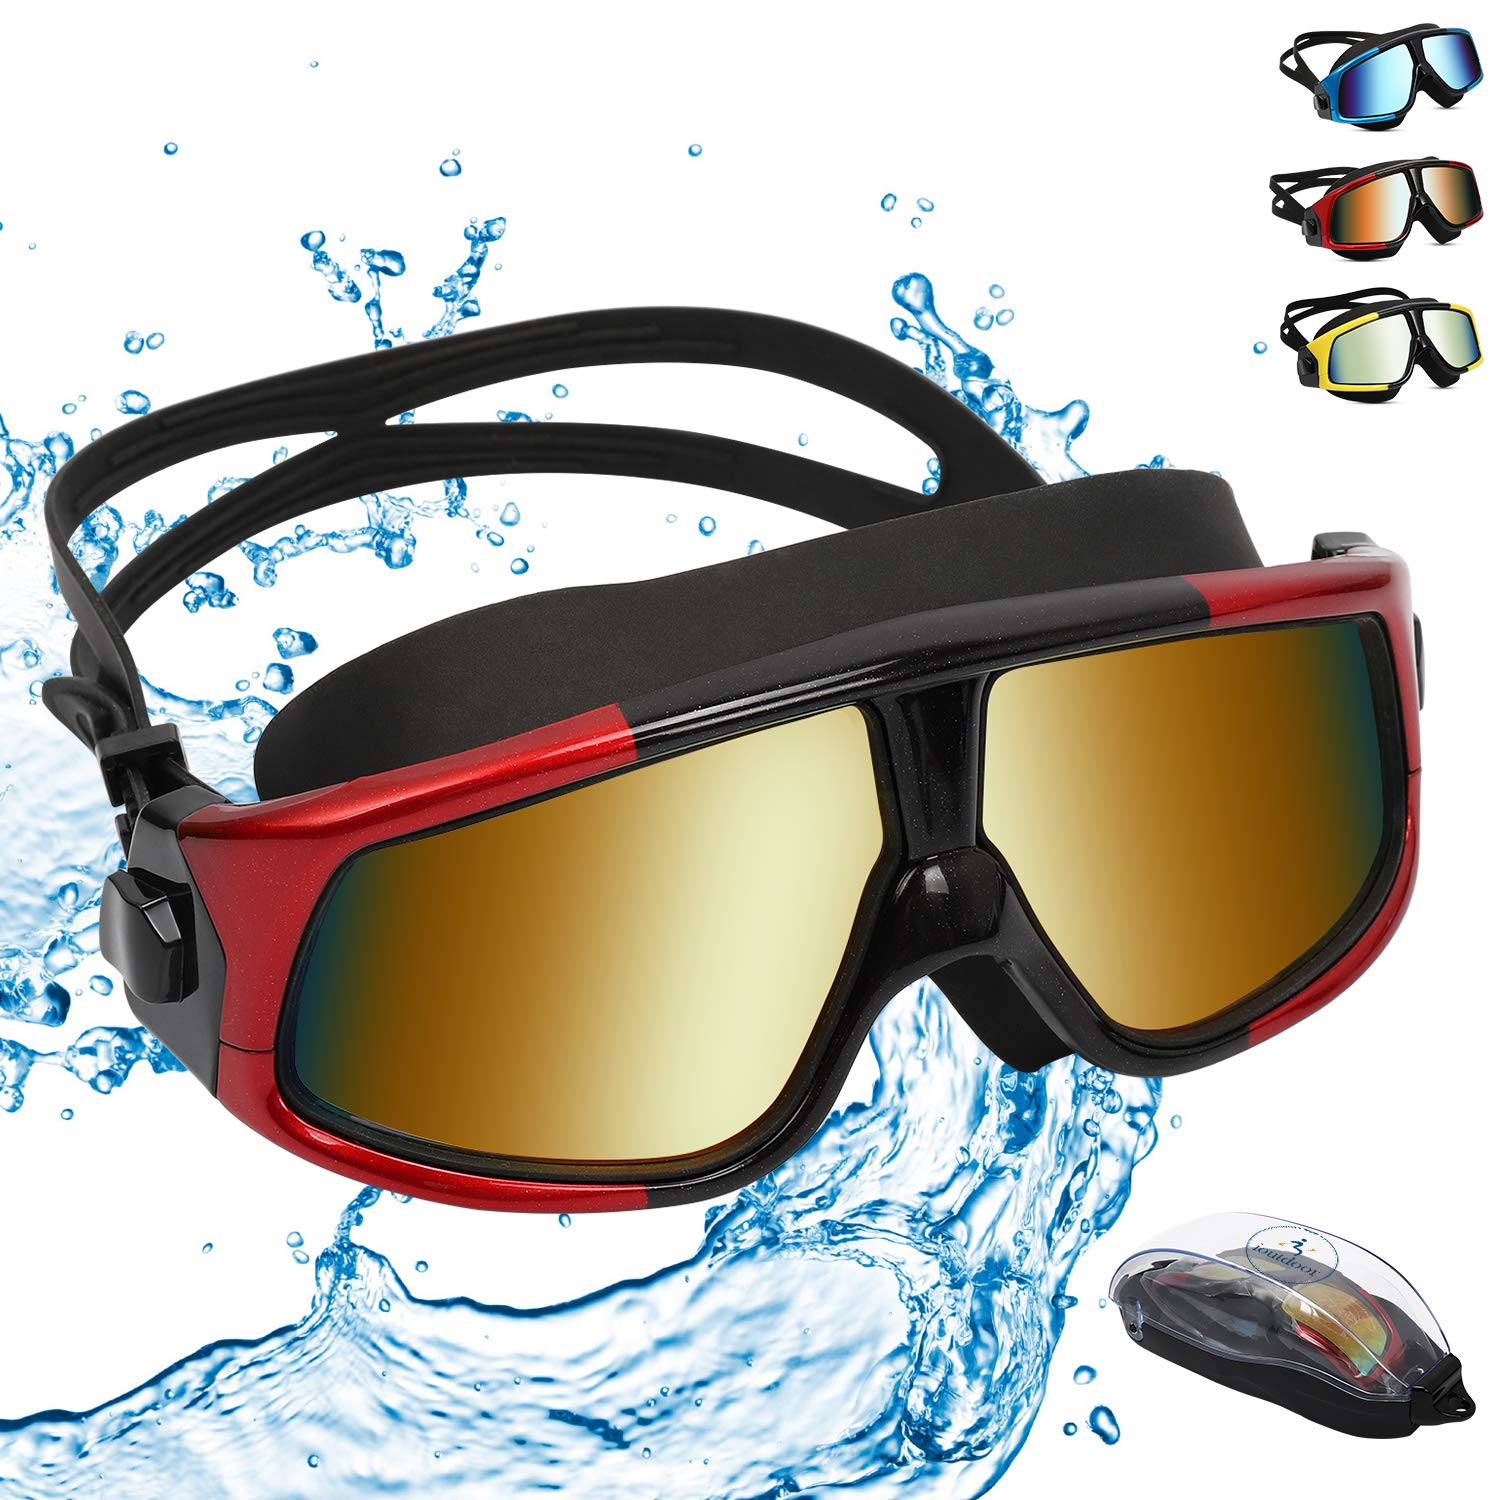 Great swimming googles